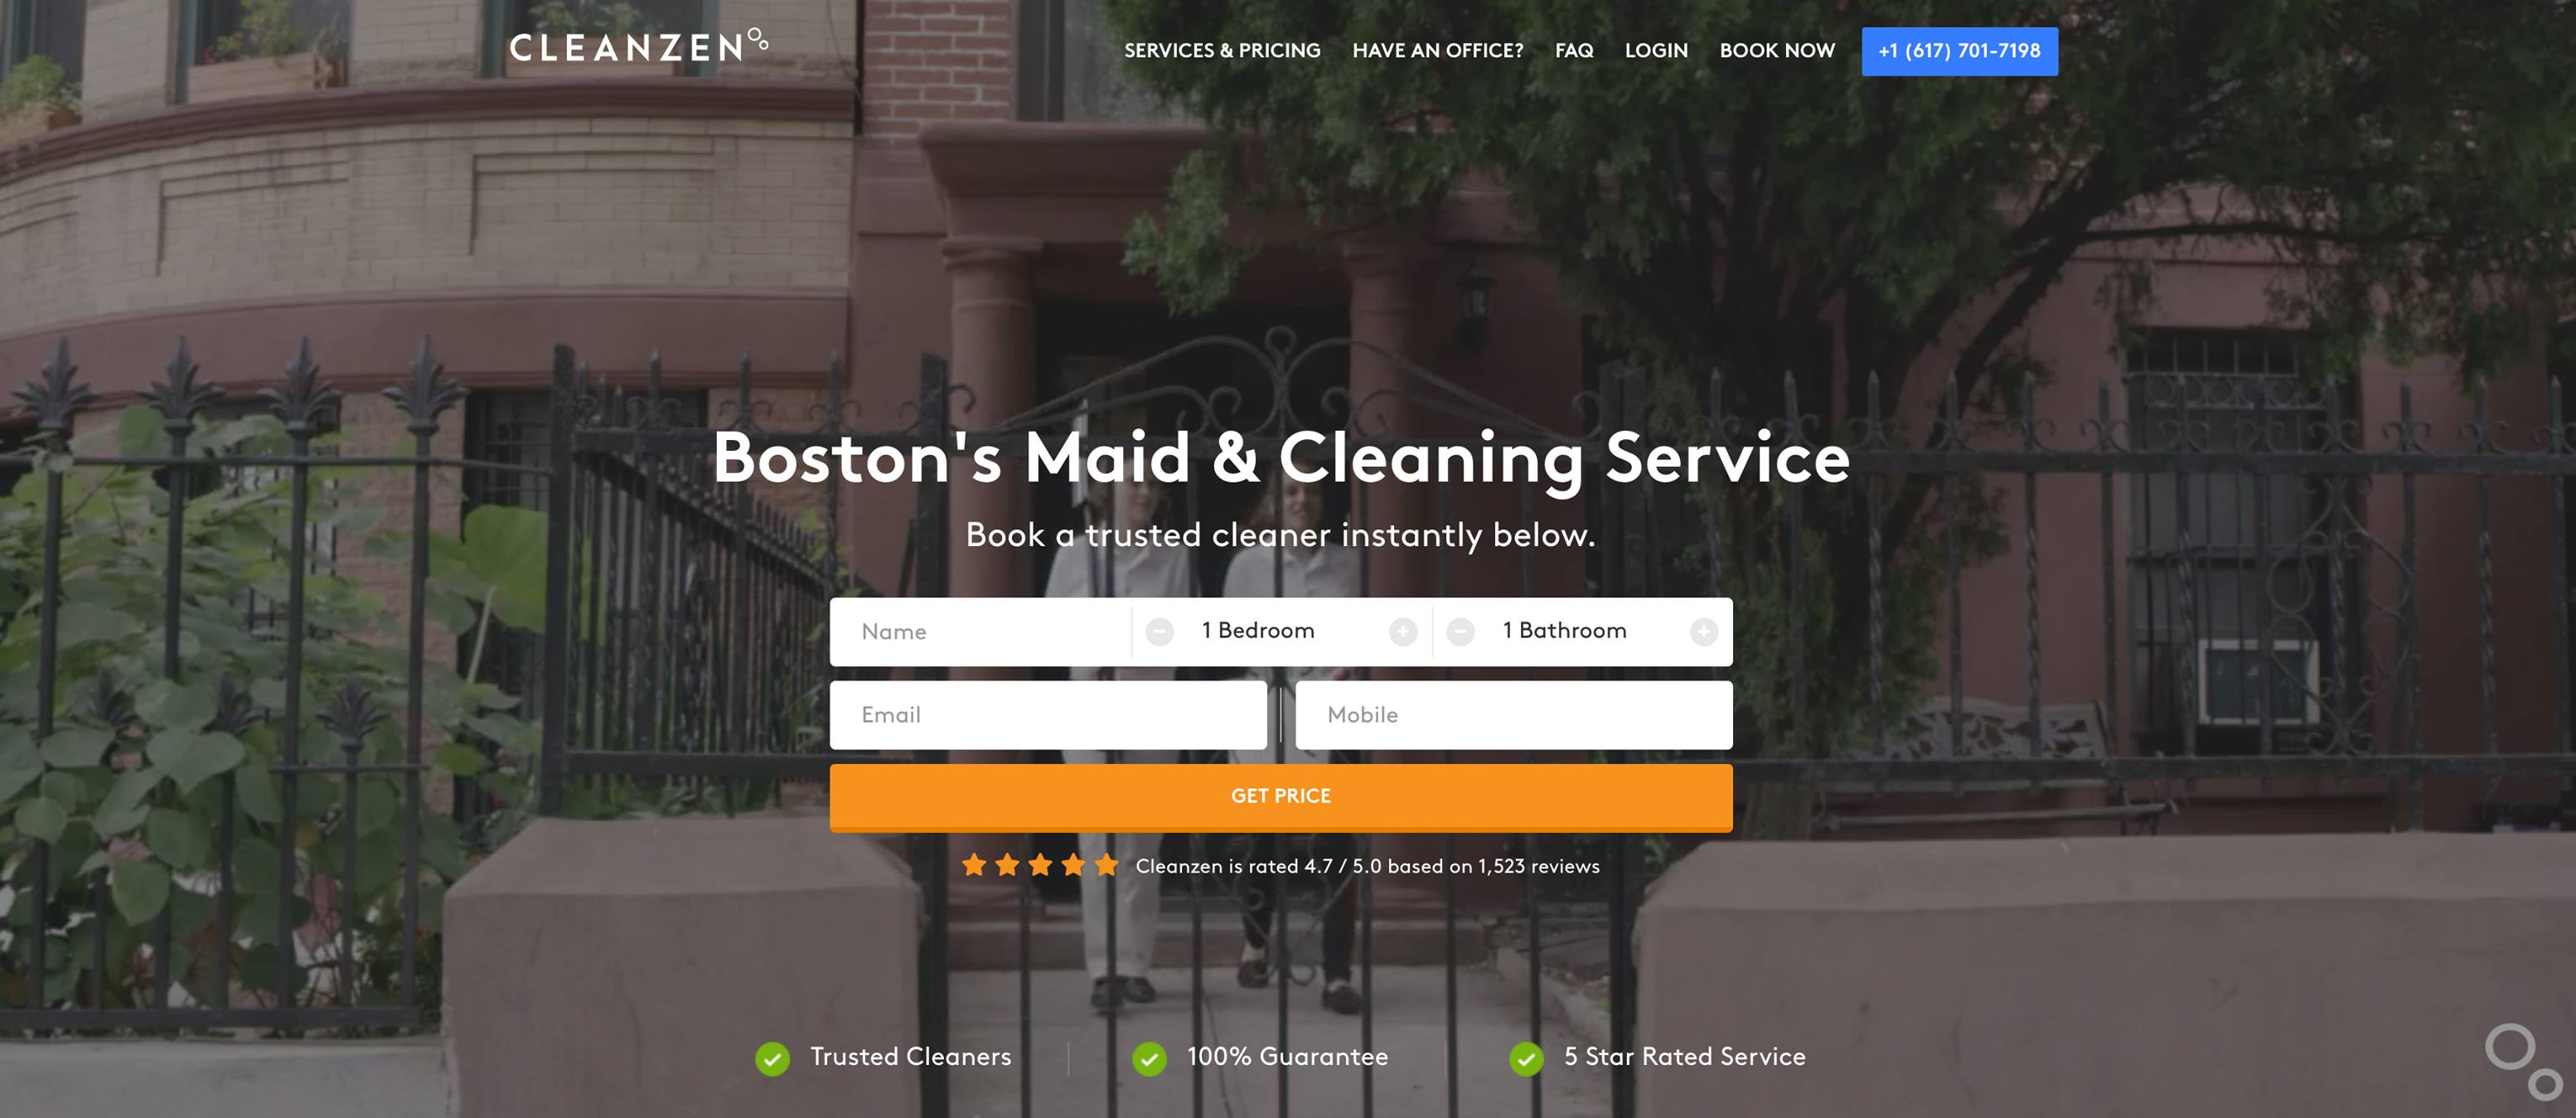 Cleanzen Cleaning Services Online Booking